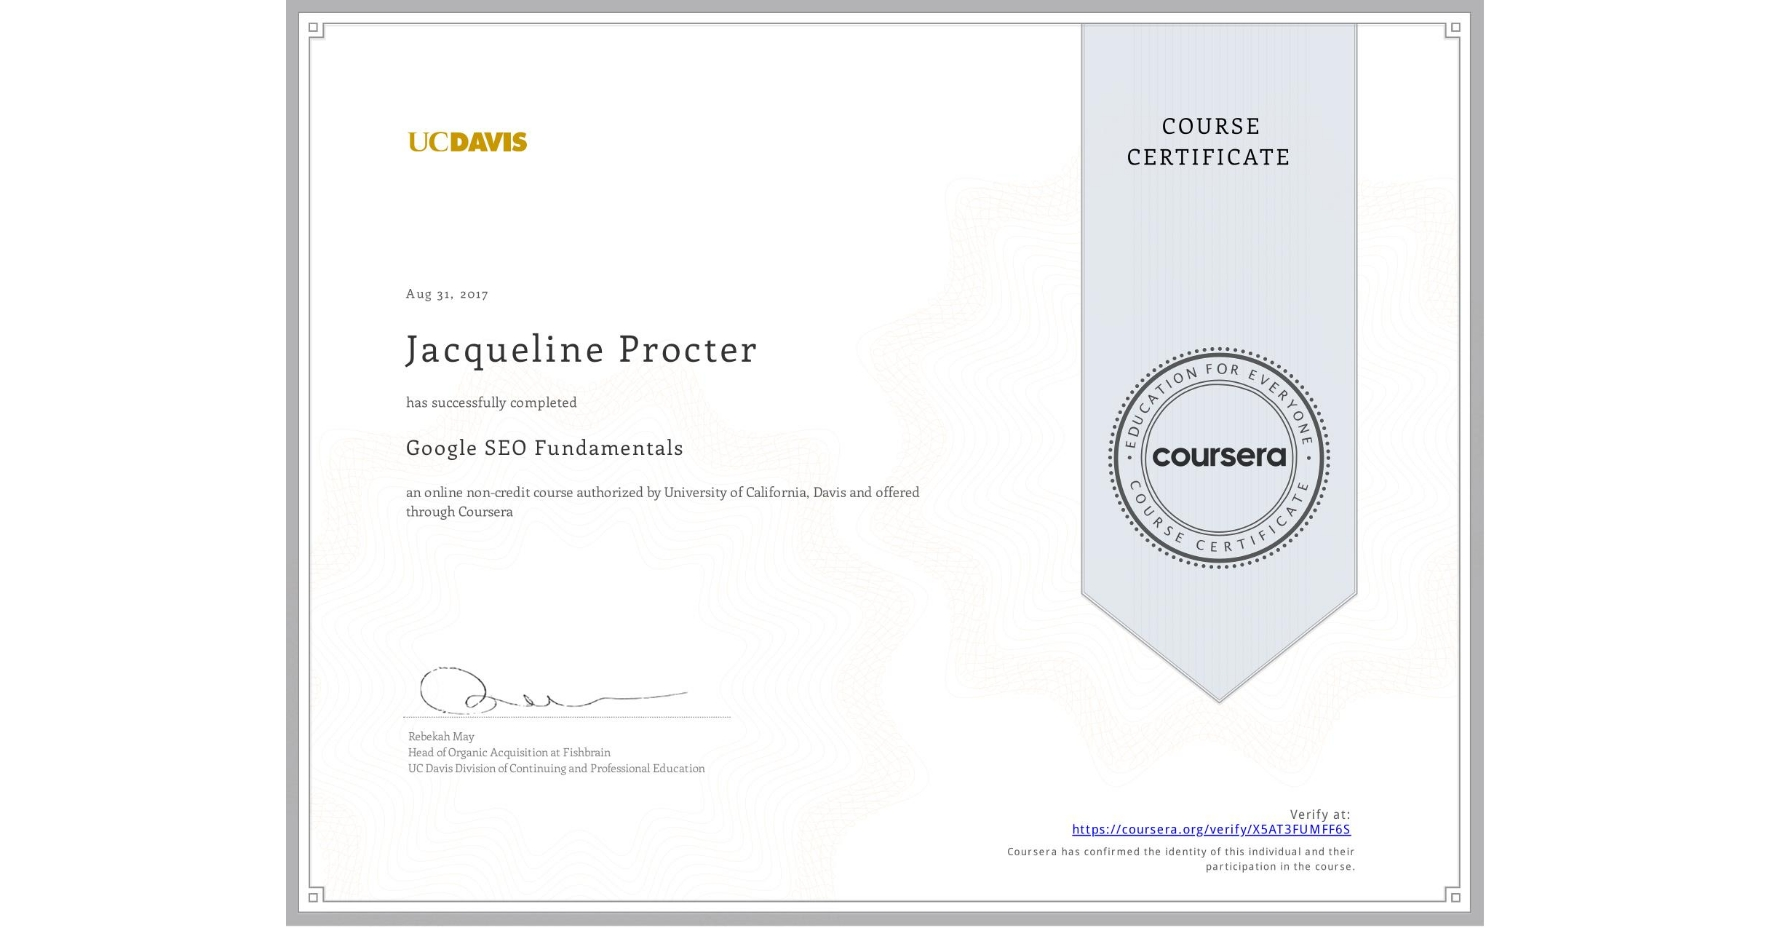 View certificate for Jacqueline Procter, Search Engine Optimization Fundamentals, an online non-credit course authorized by University of California, Davis and offered through Coursera